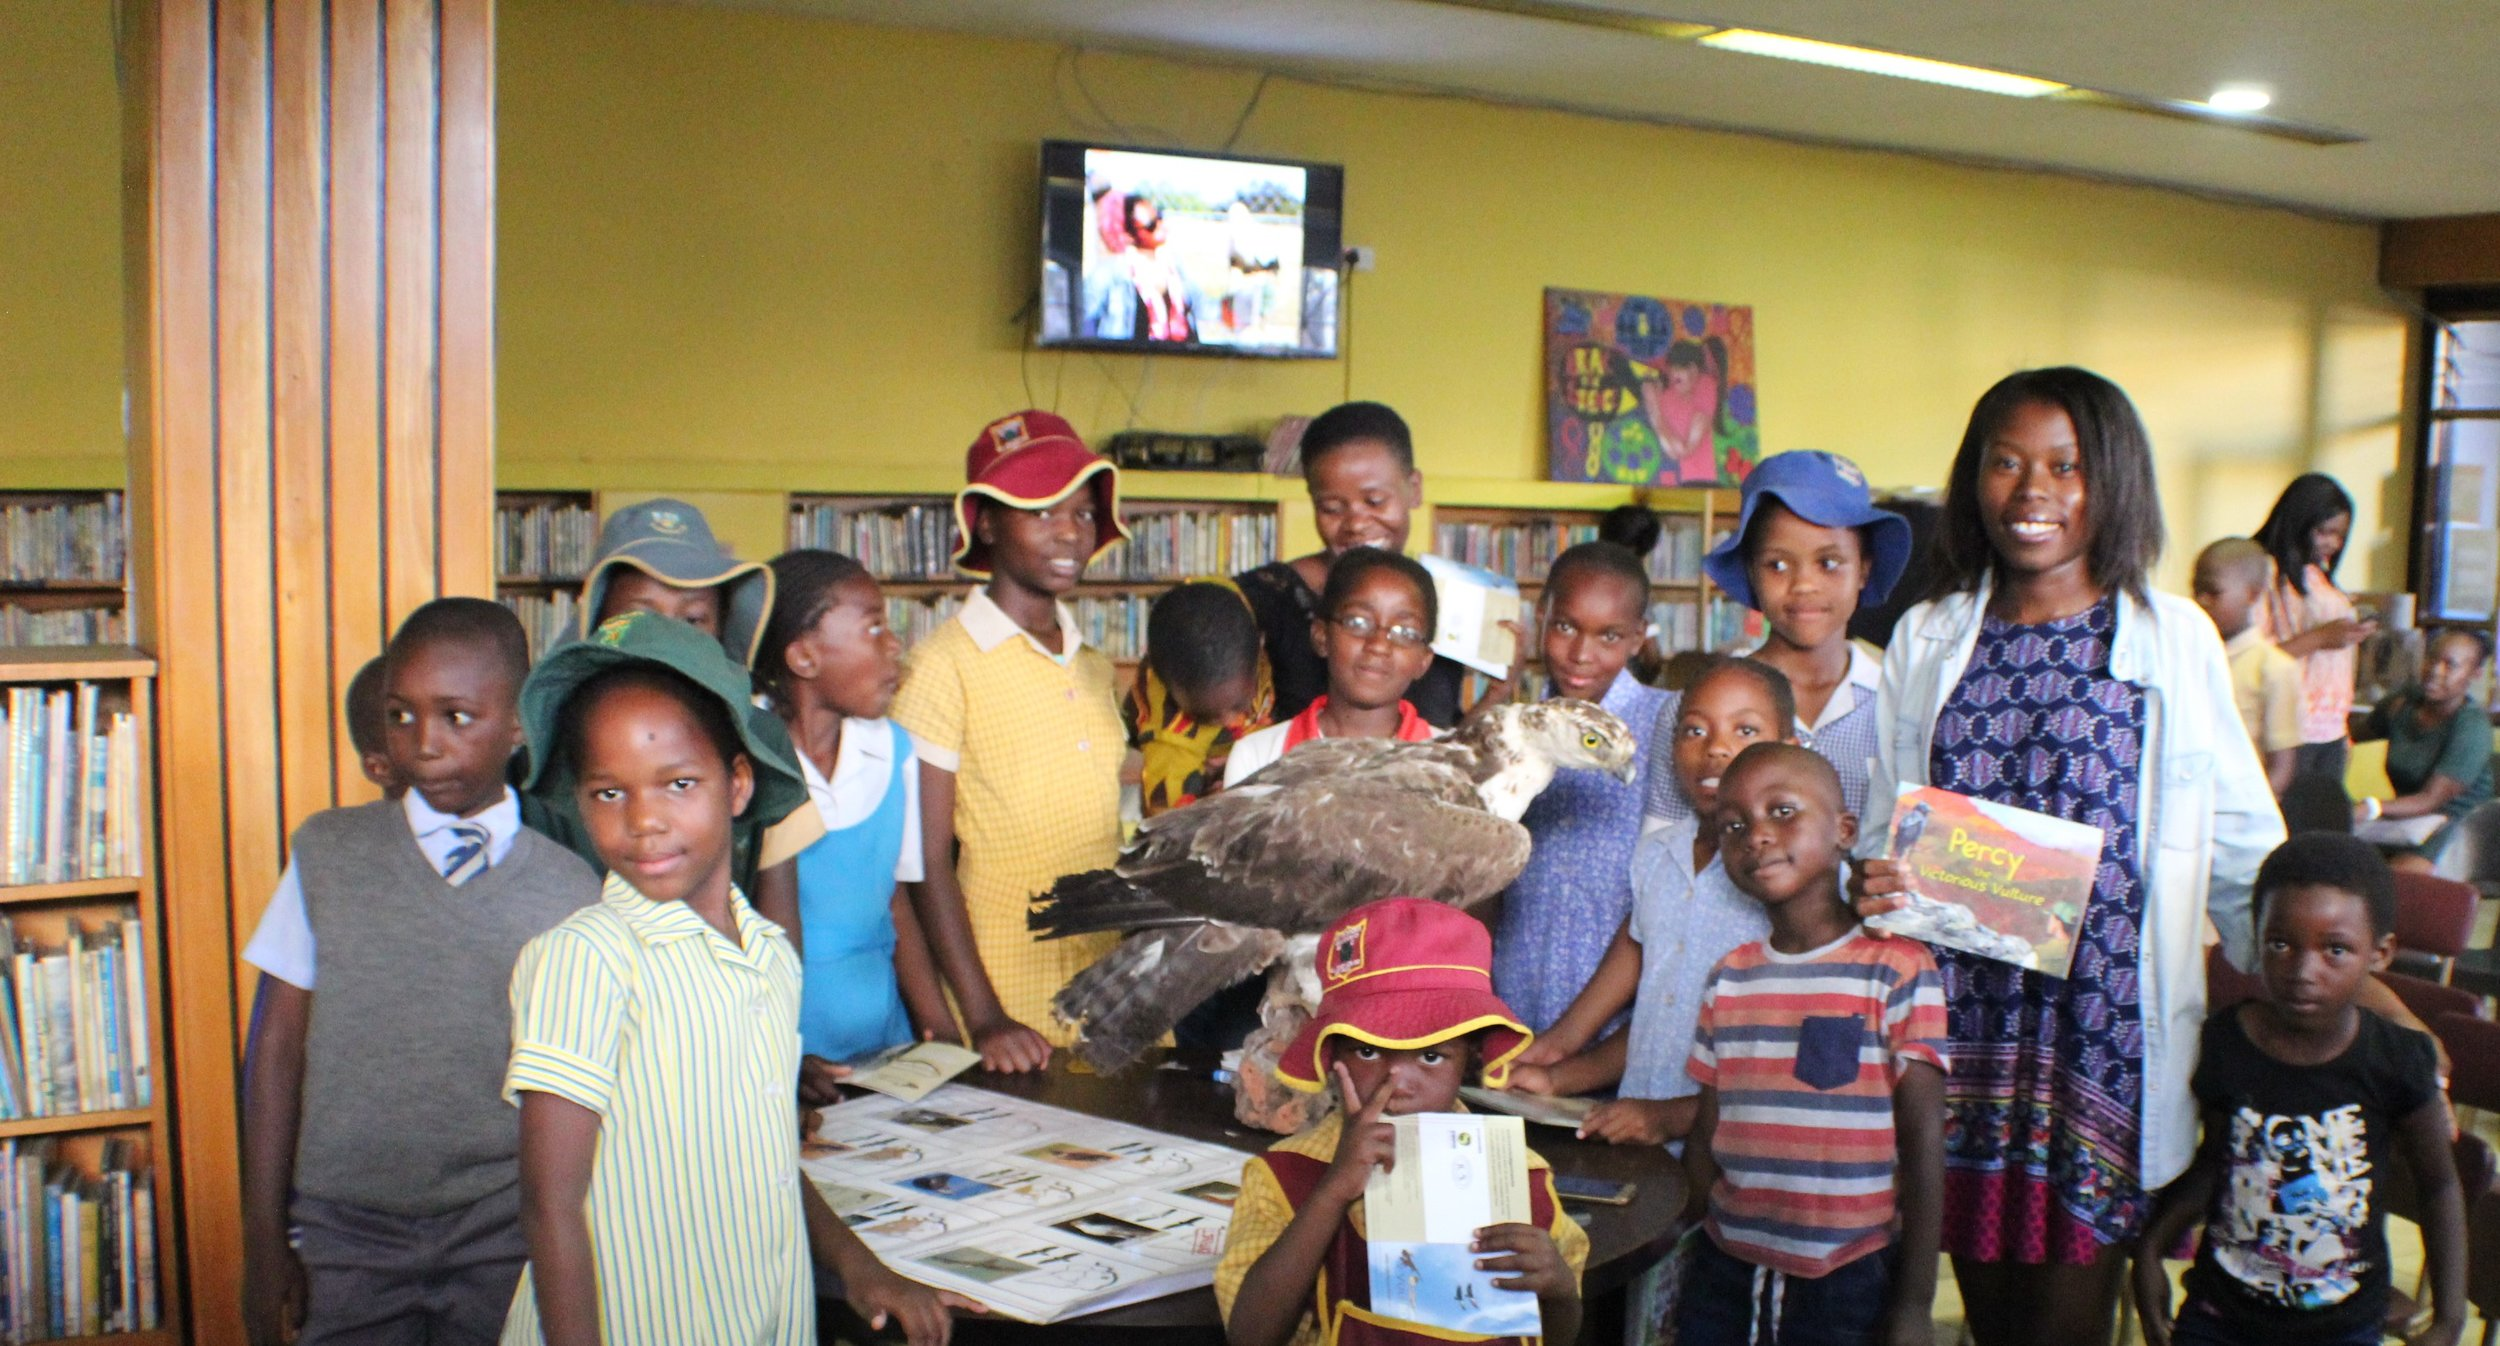 Merlyn (right) poses with some of the children who attended the education program.